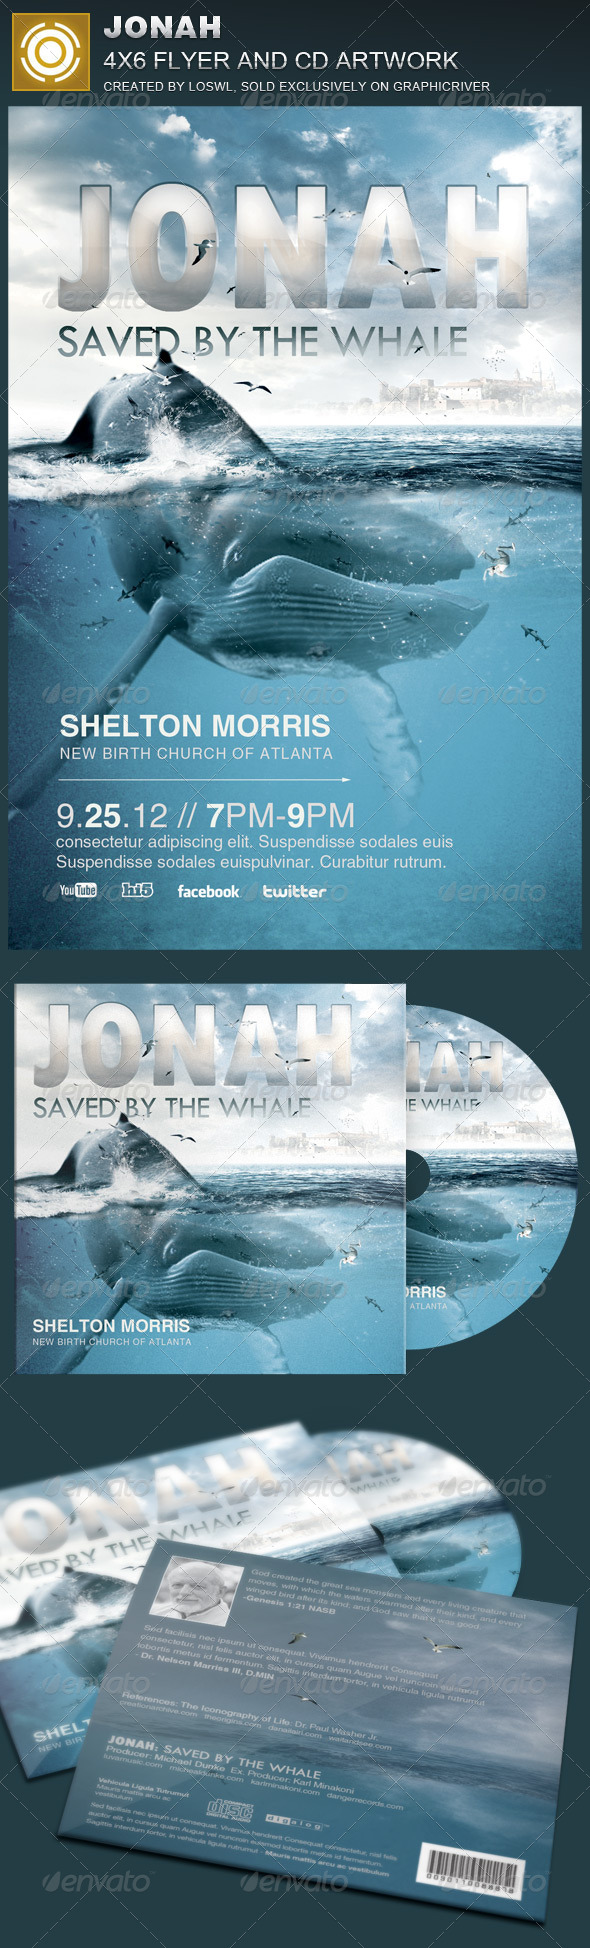 Jonah Church Flyer and CD Template - Church Flyers